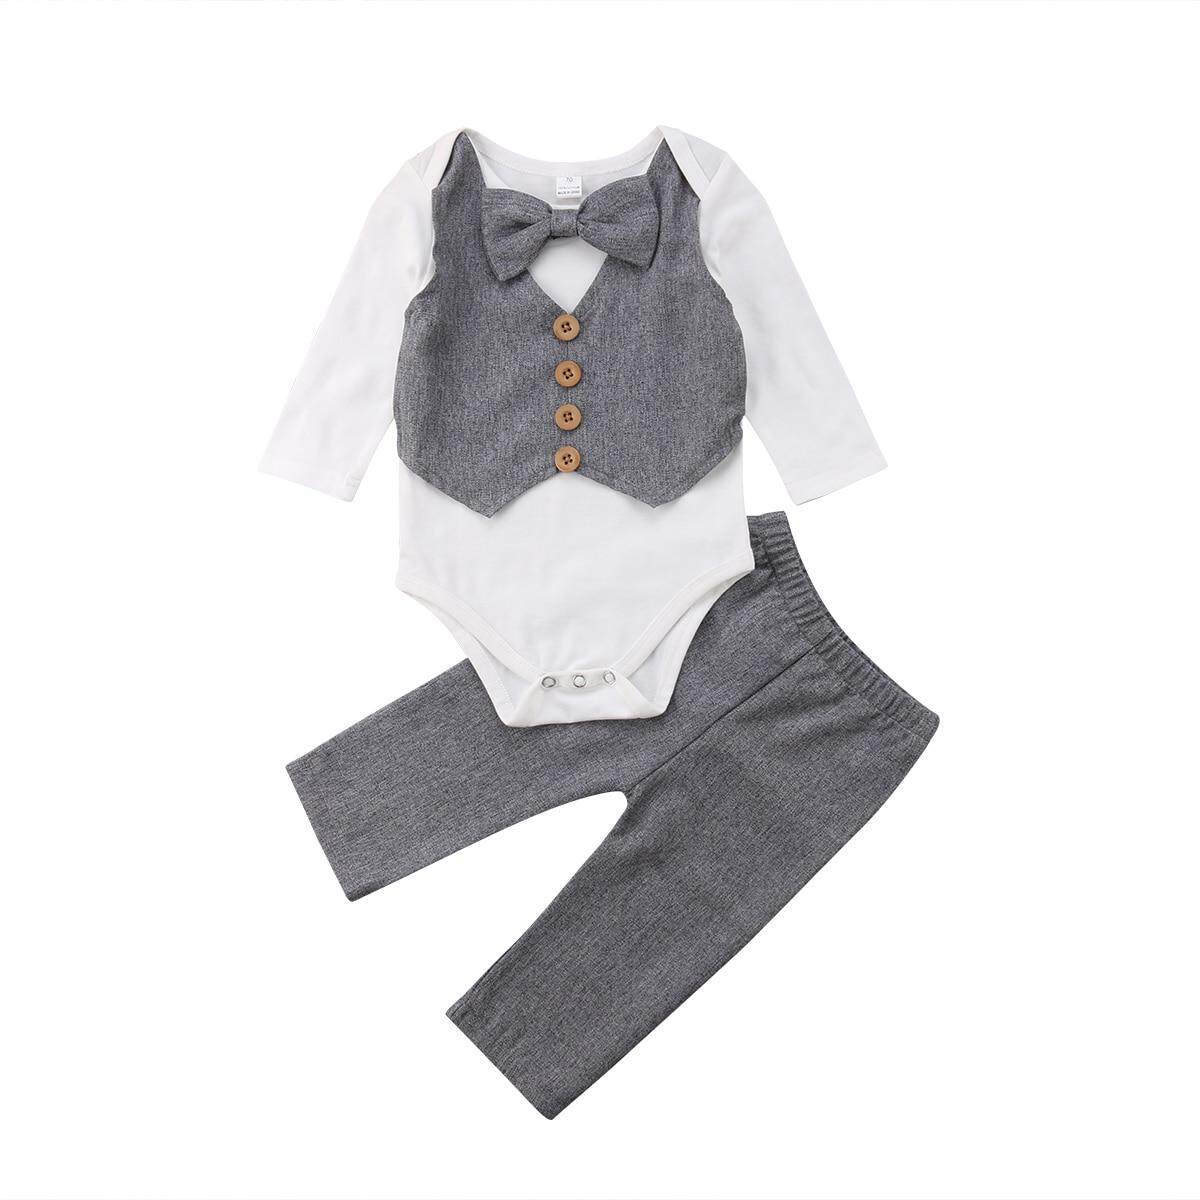 39d7c2490abe Clothing Set for Baby Boys for sale - Baby Boys Clothing Set online ...